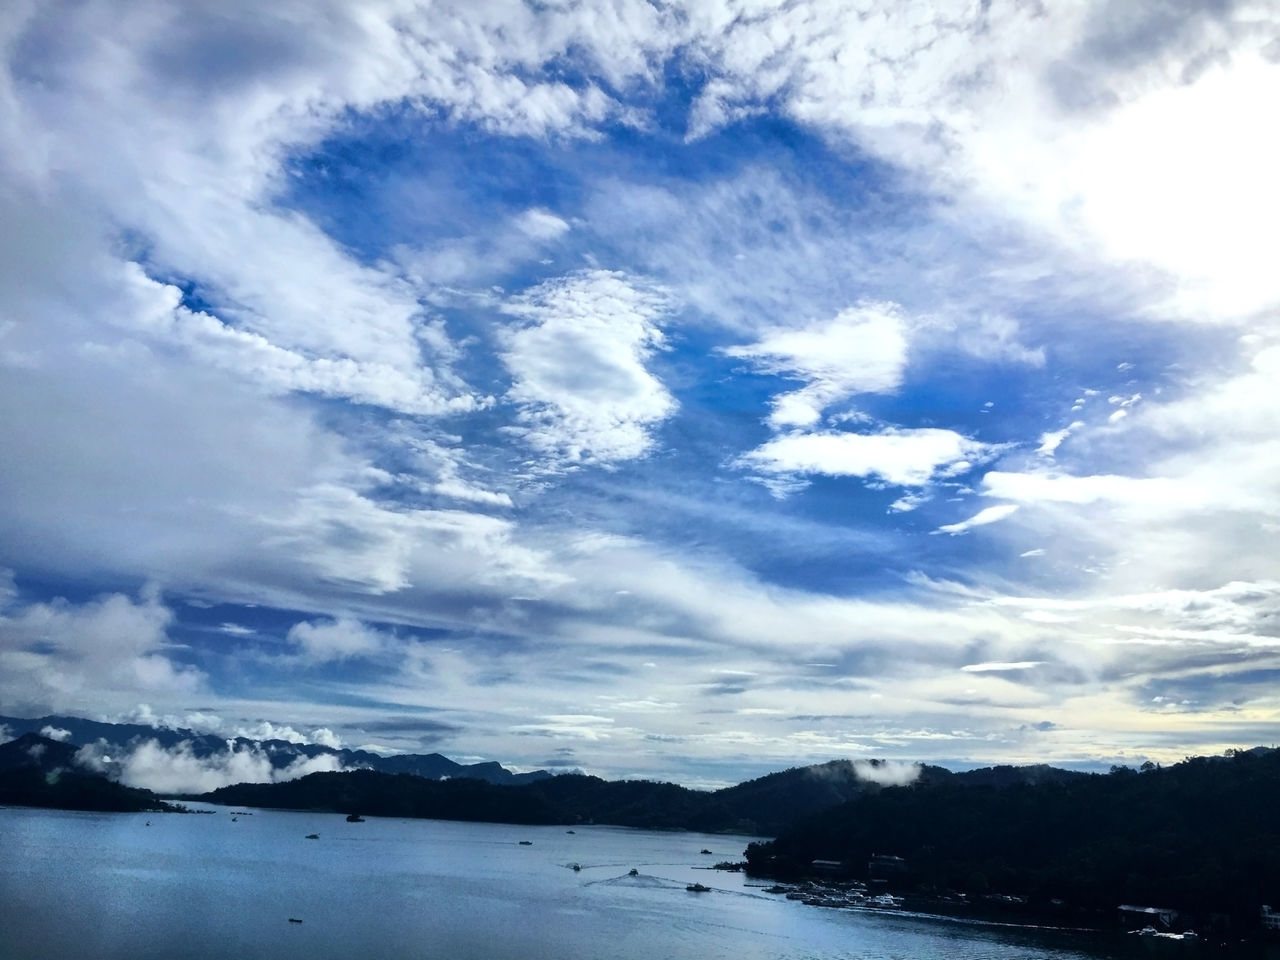 cloud - sky, sky, scenics, beauty in nature, tranquility, nature, water, no people, tranquil scene, sea, outdoors, mountain, day